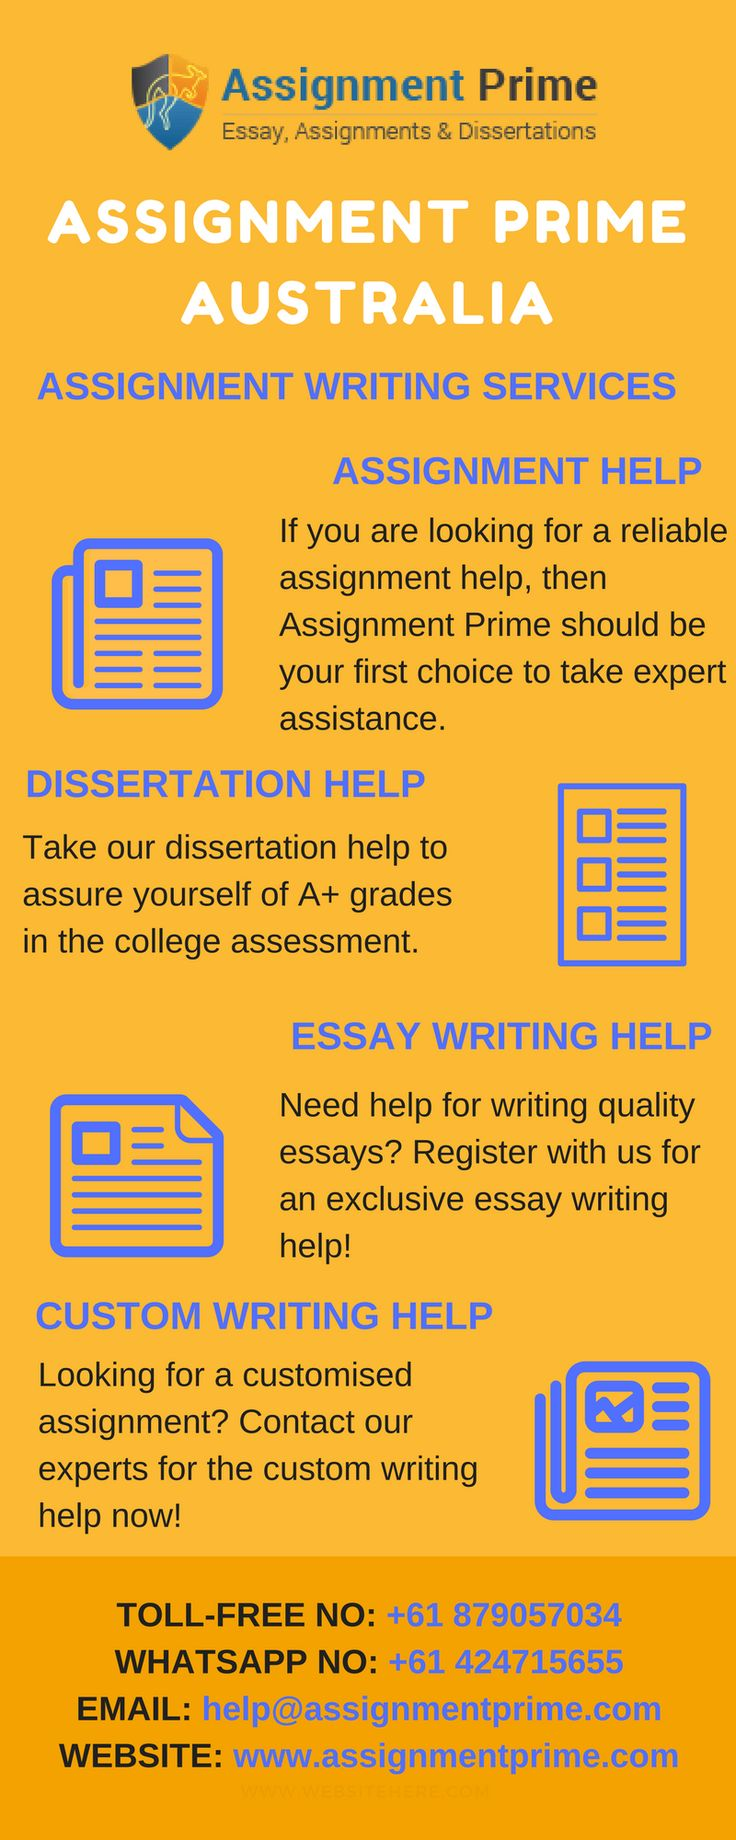 assignment writing services in australia An internship is typically done later in your college career, or sometimes after you graduate the object of the position is to give you real world experience that you can add to your resume as you seek a paid job in the future.